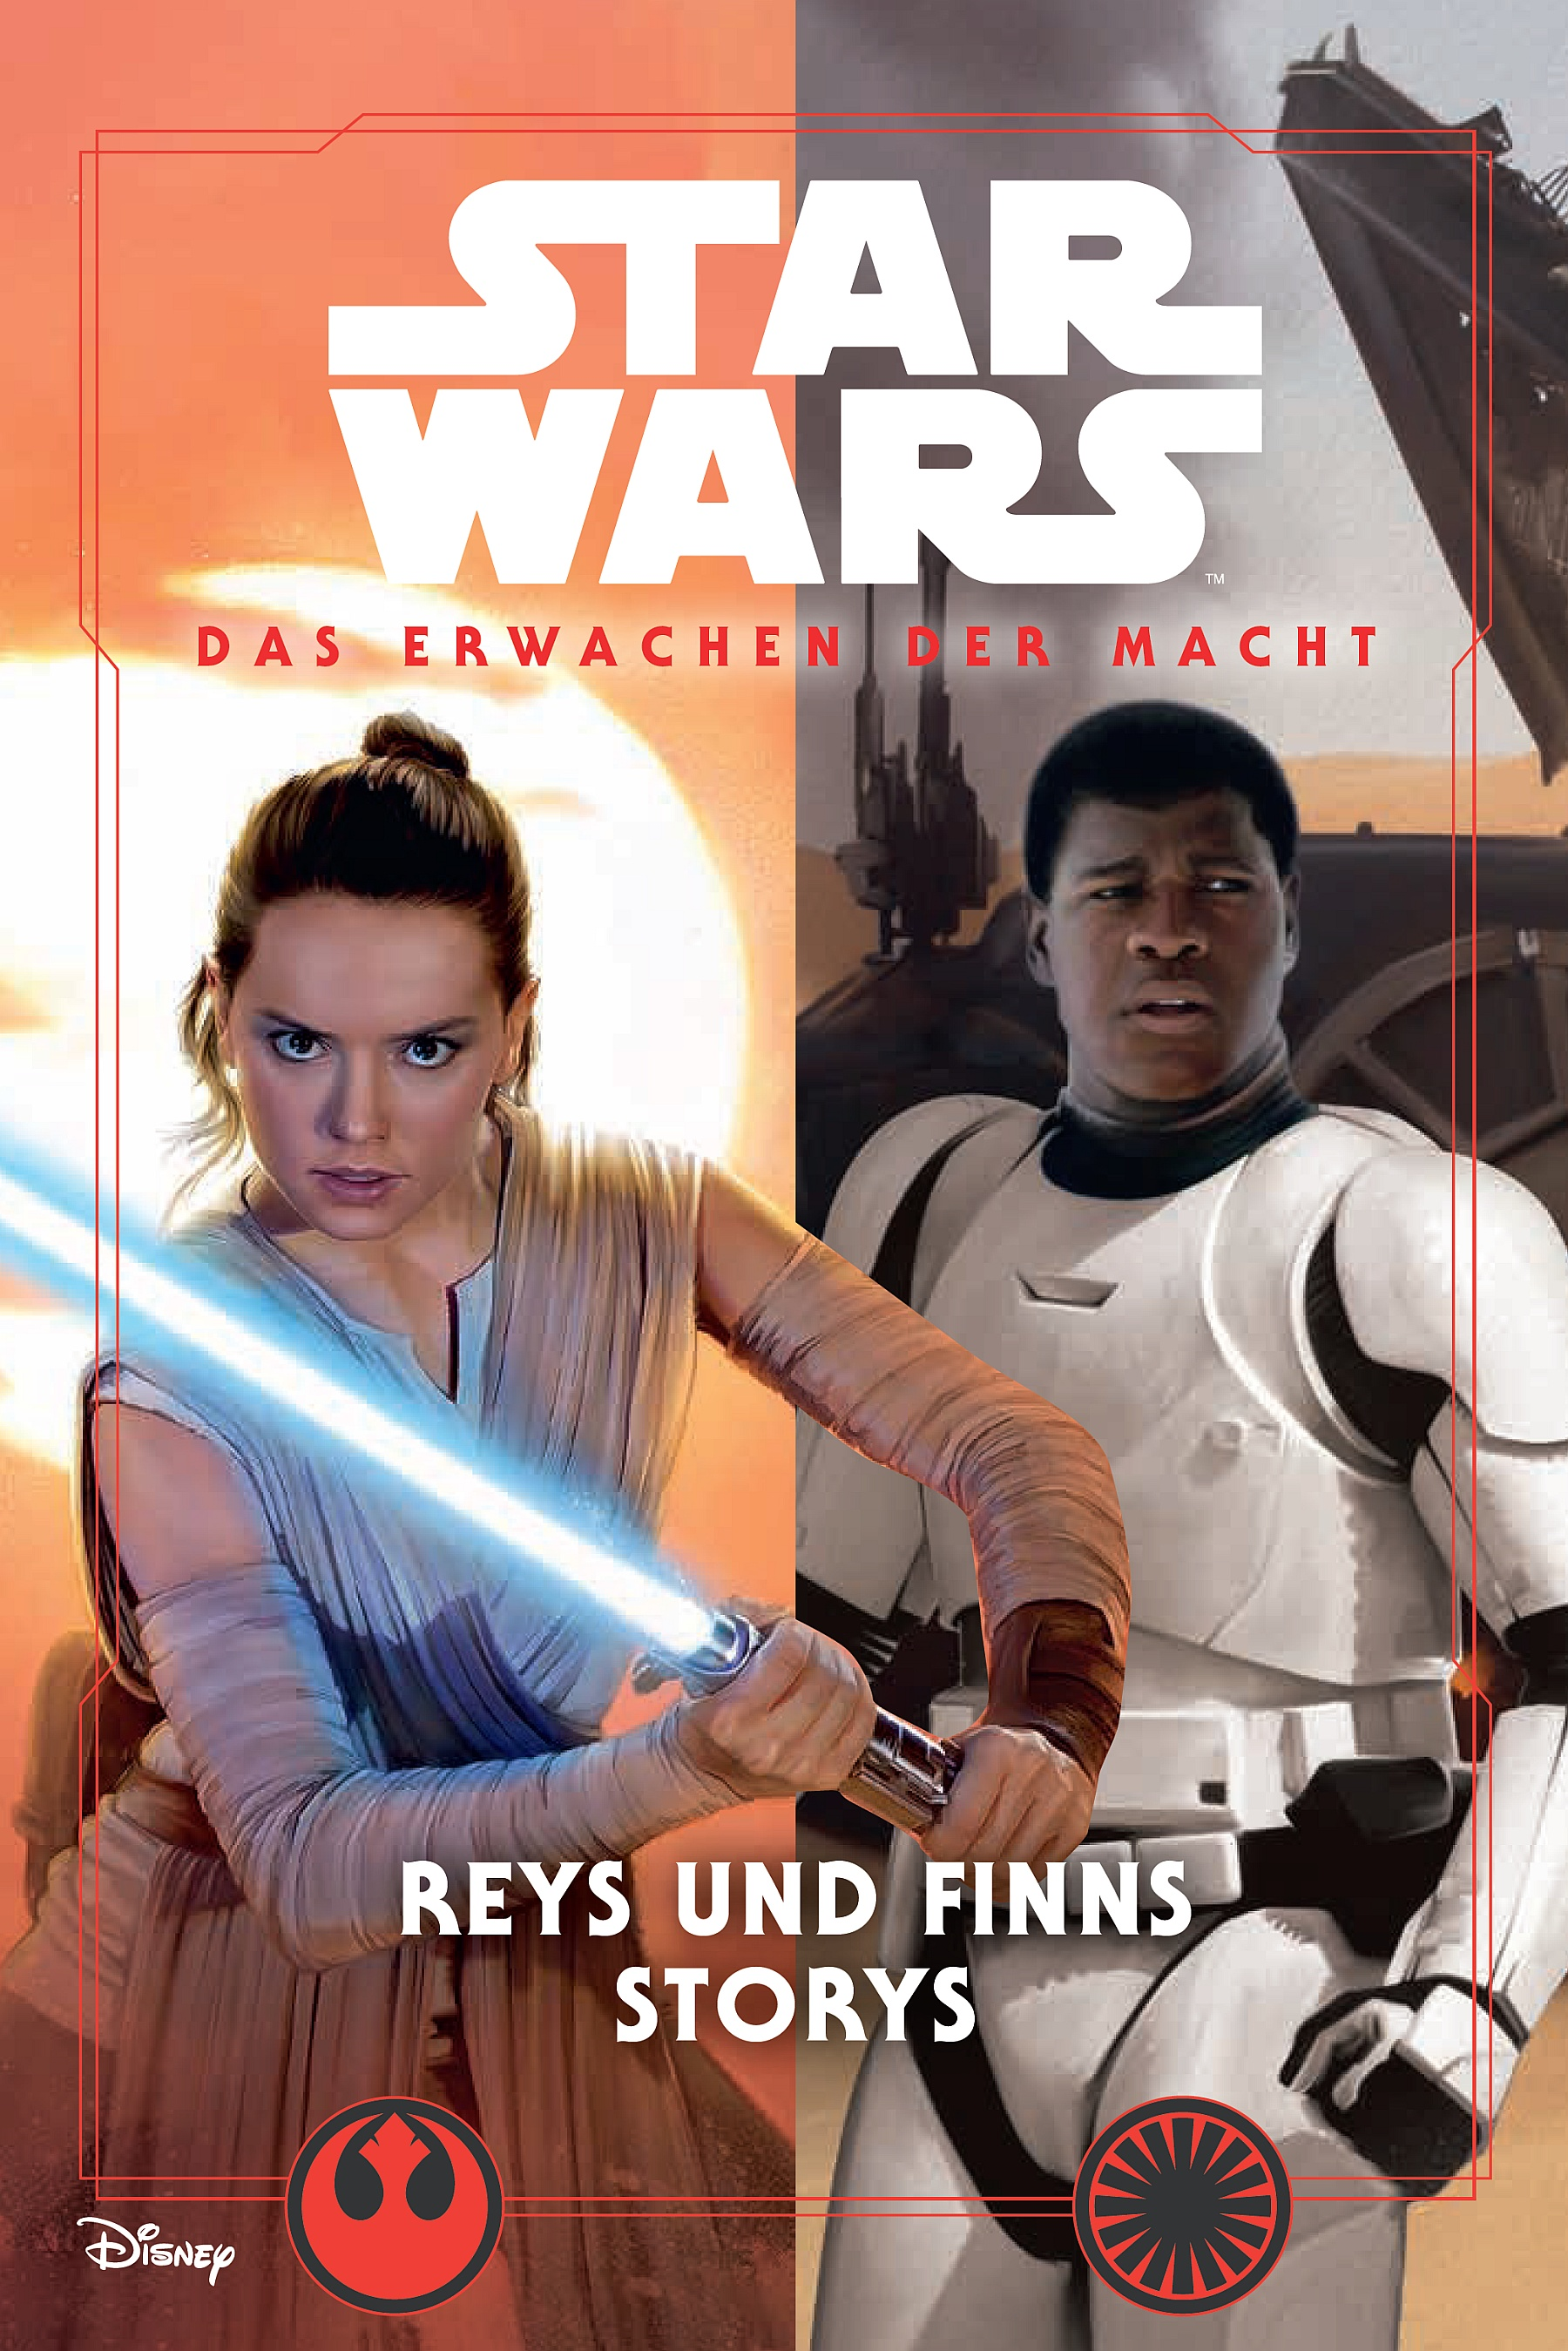 The Force Awakens: Rey's and Finn's Stories